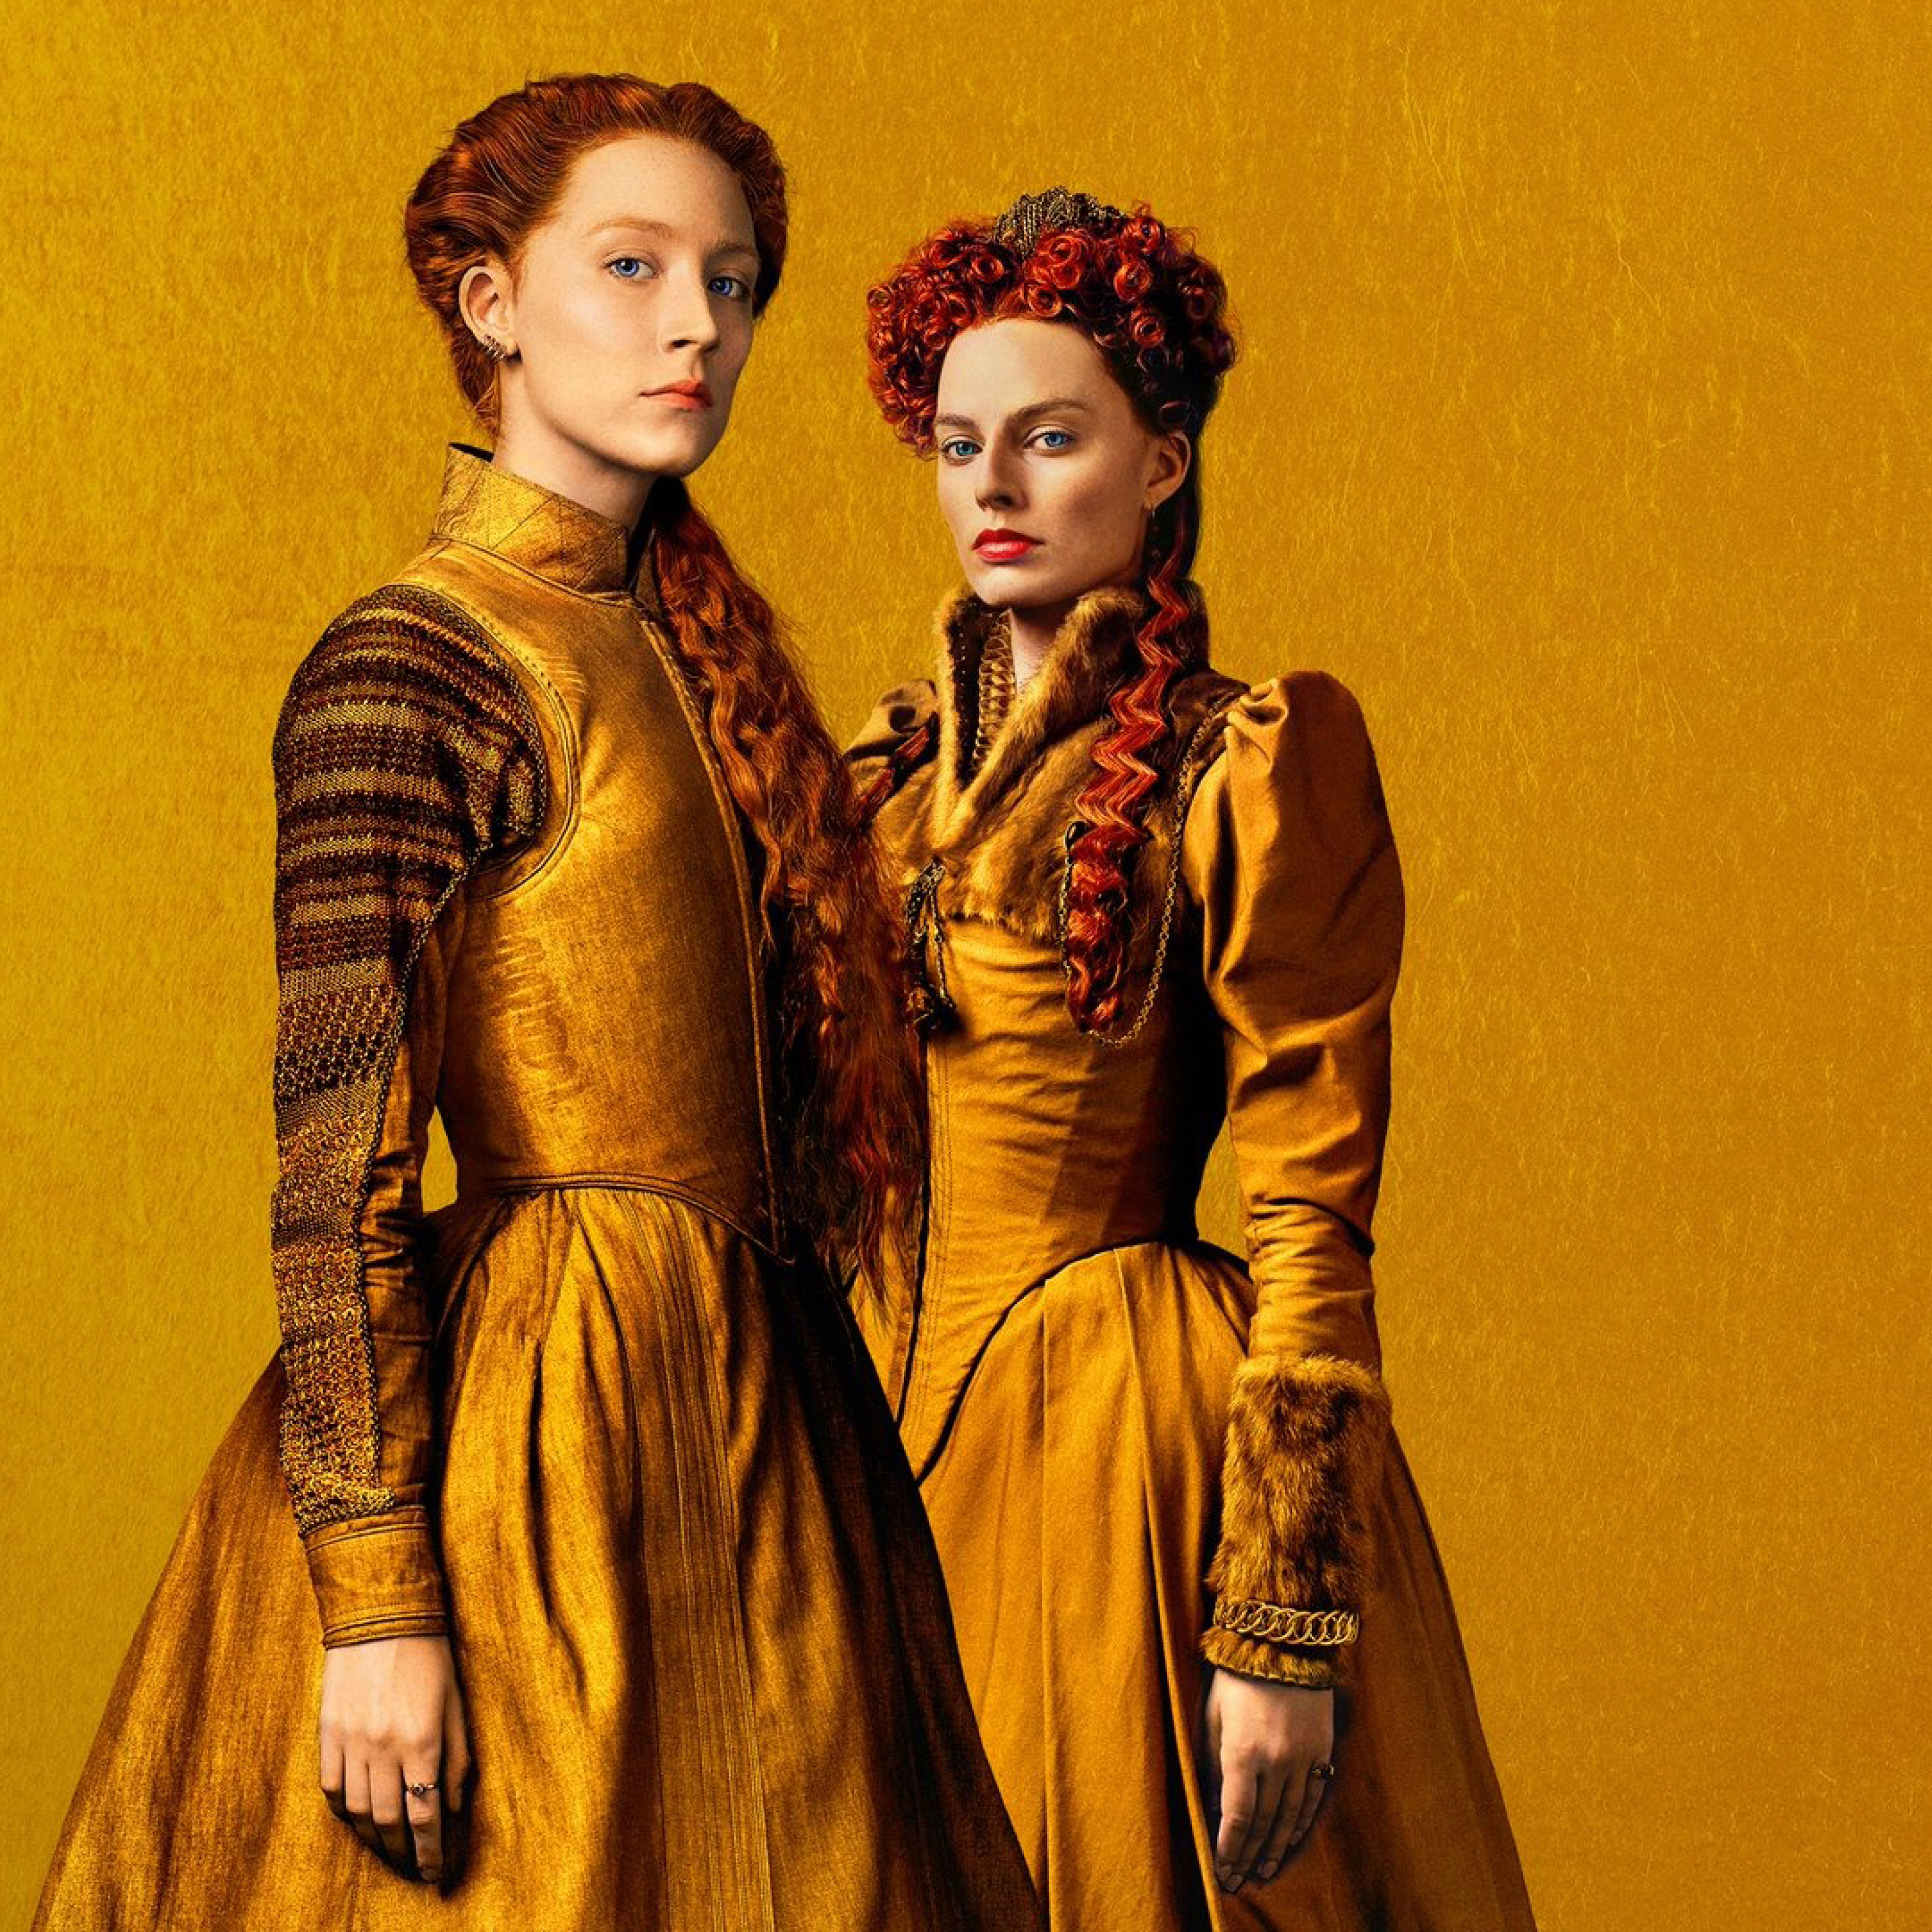 2932x2932 Margot Robbie and Saoirse Ronan in Mary Queen of Scots 2932x2932